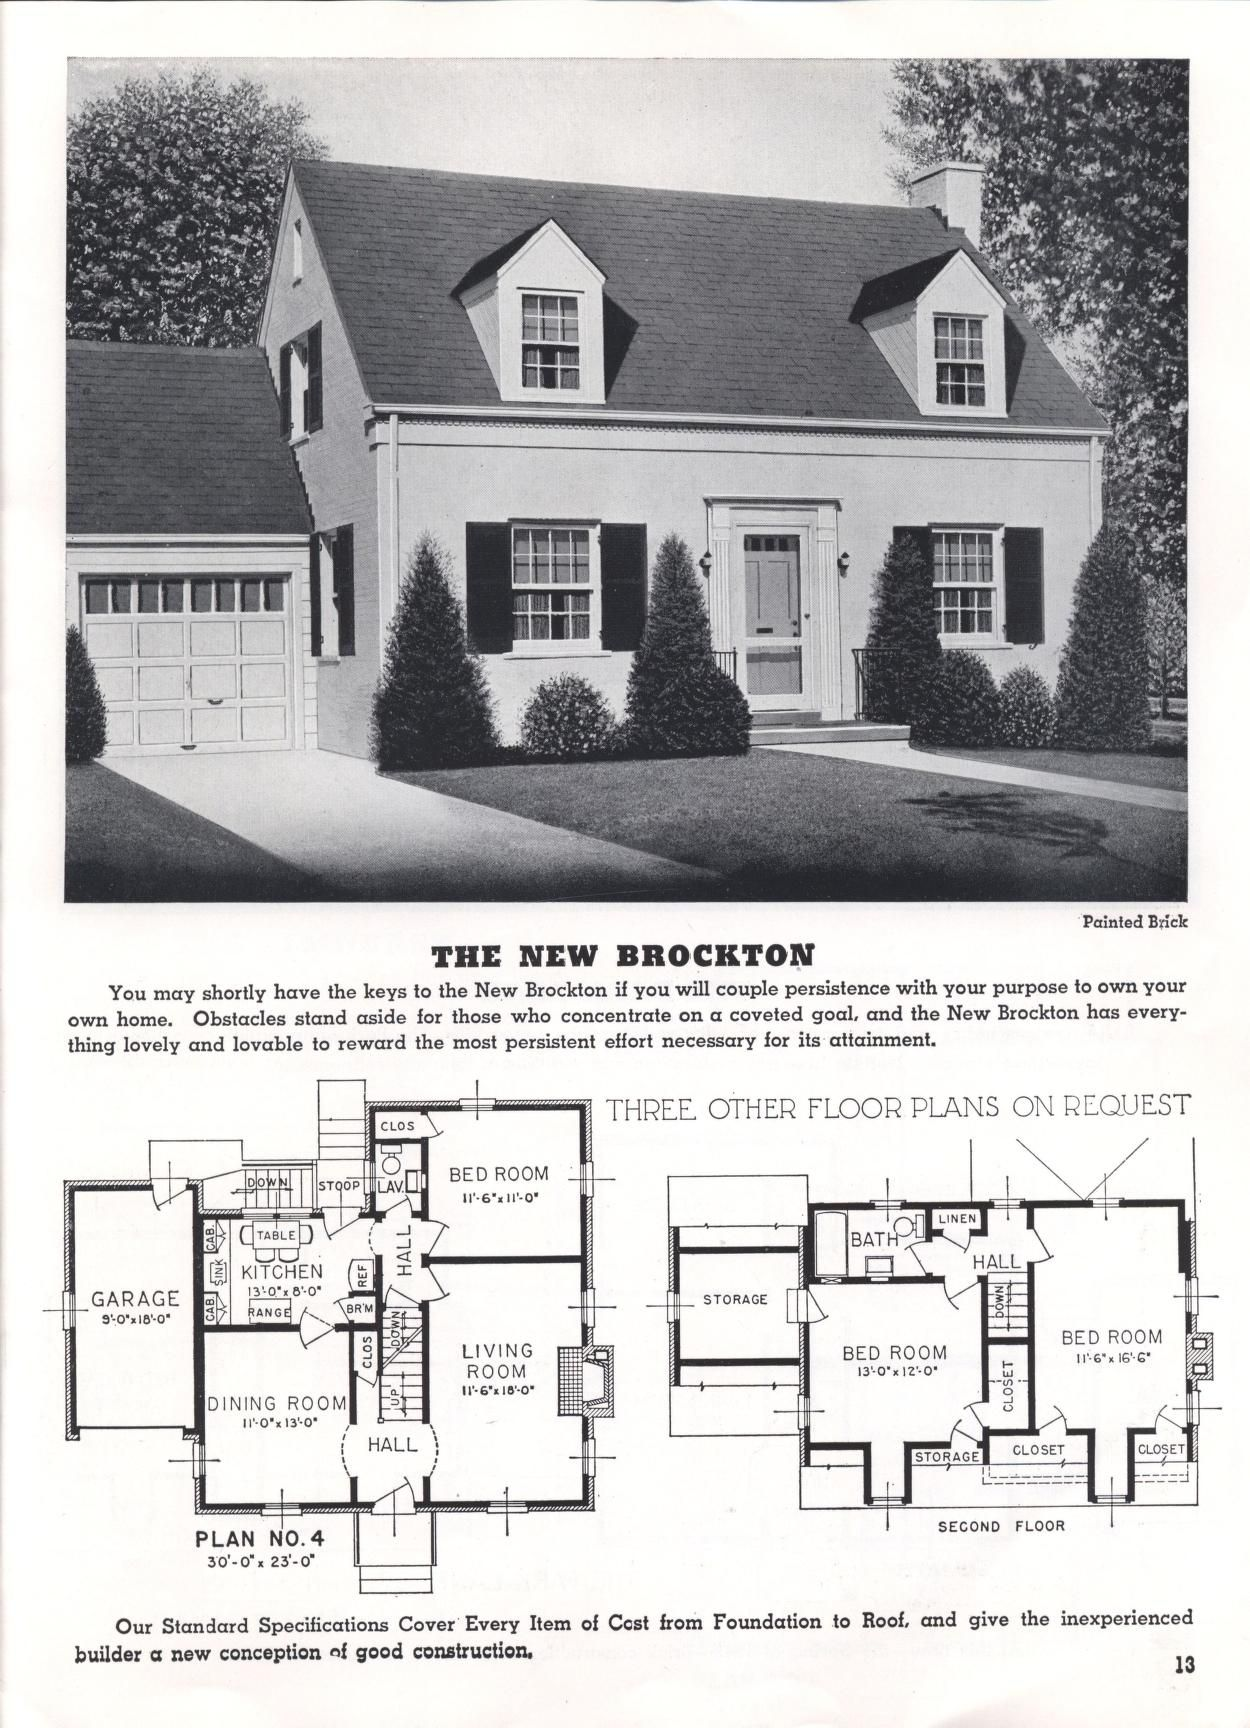 Homes Of Today And Tomorrow B 48 Standard Homes Co Free Download Borrow And Streaming Internet Archive Vintage House Plans Dream House Plans Cape Cod House Plans